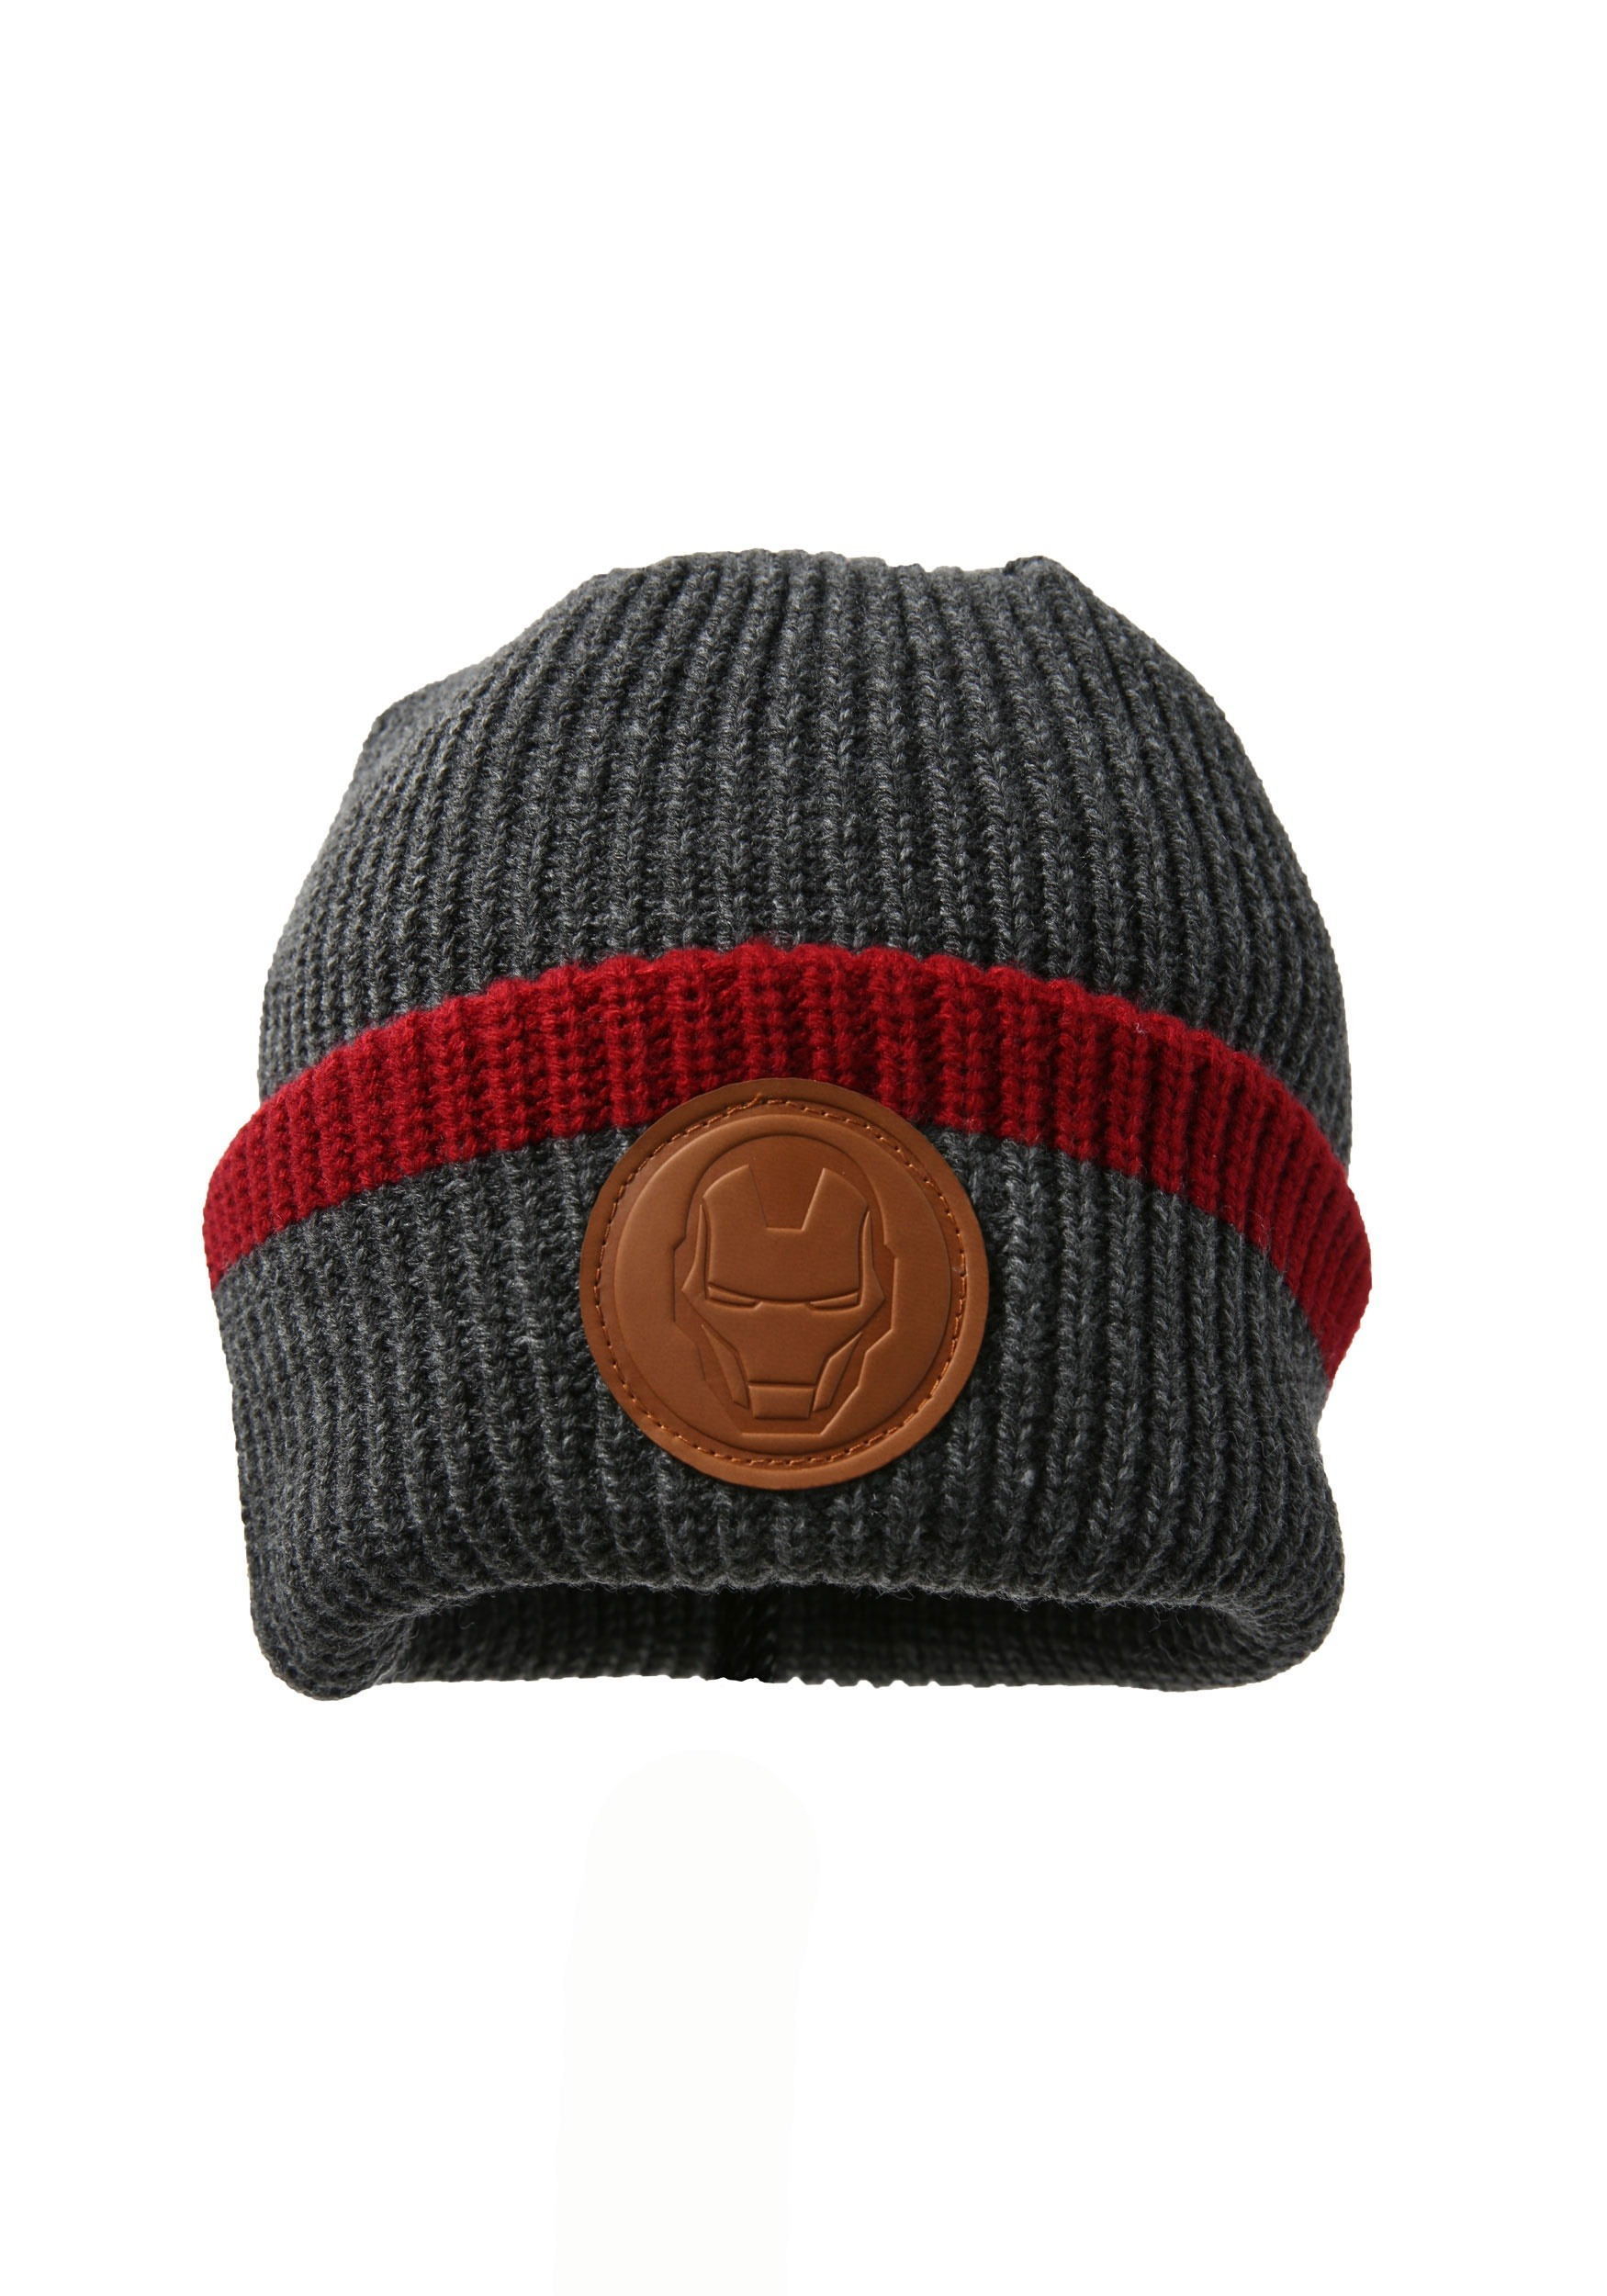 6c613c13253 Marvel Iron Man Winter Hat